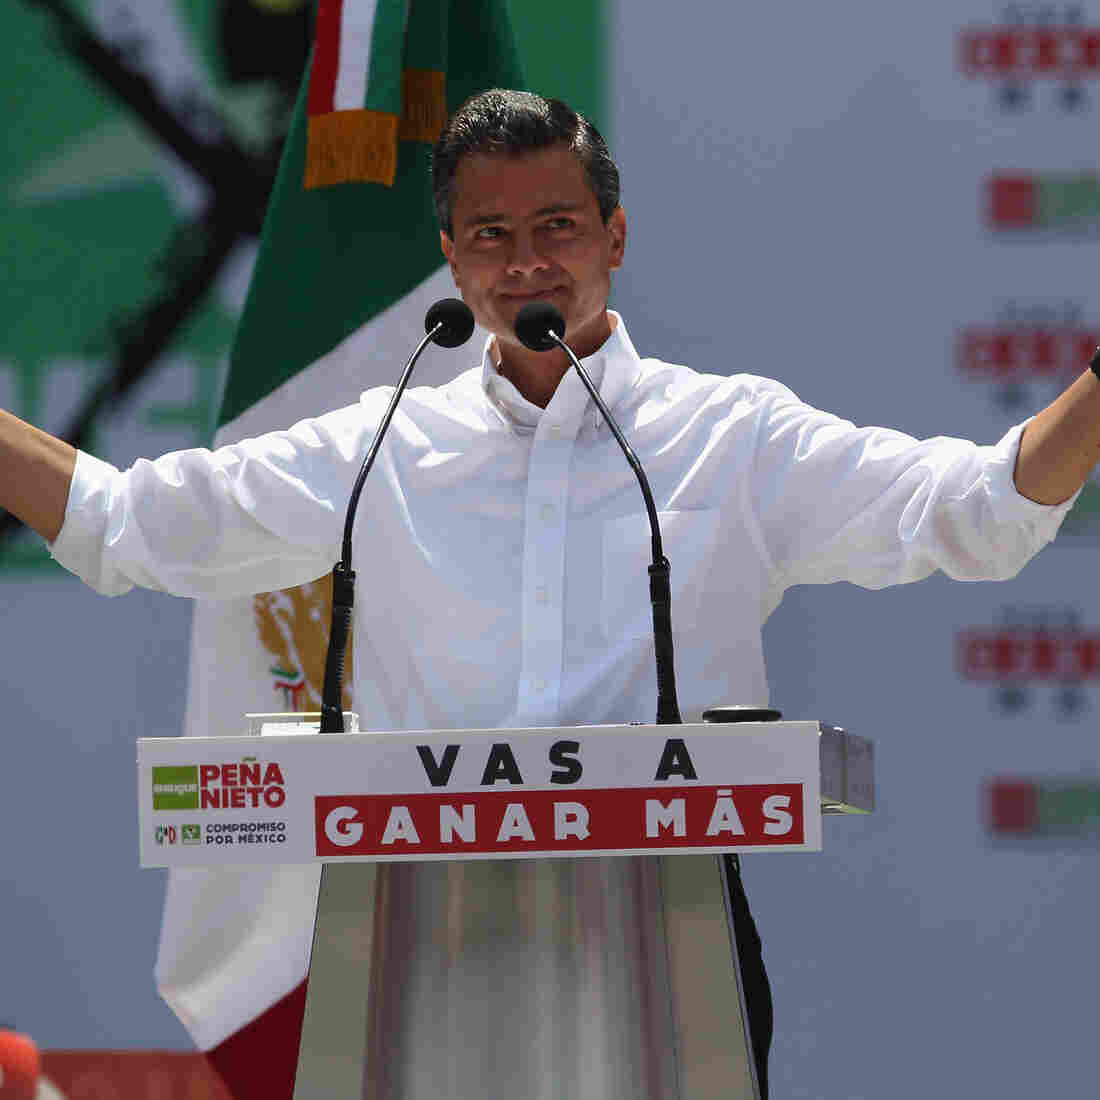 Mexico's Election: A Fresh Face For An Old Party